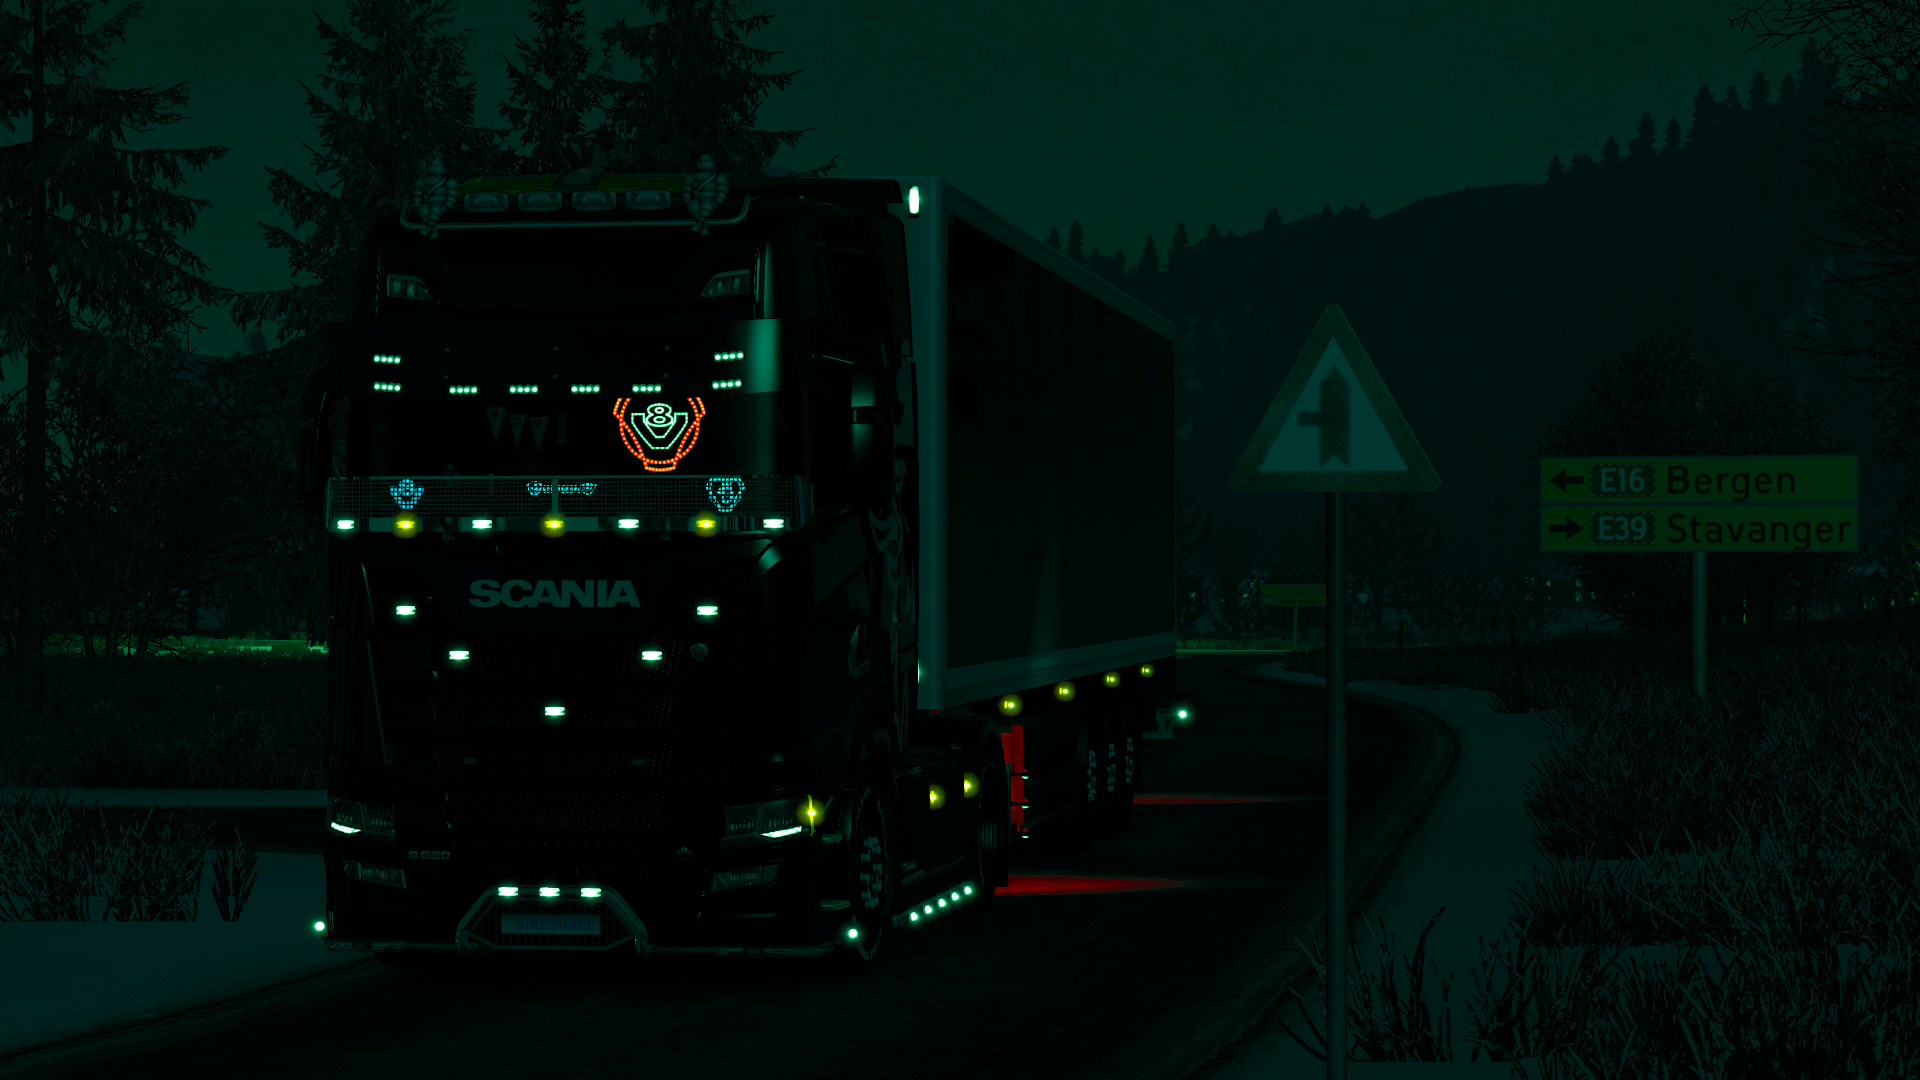 ets2_20190118_011614_00.png